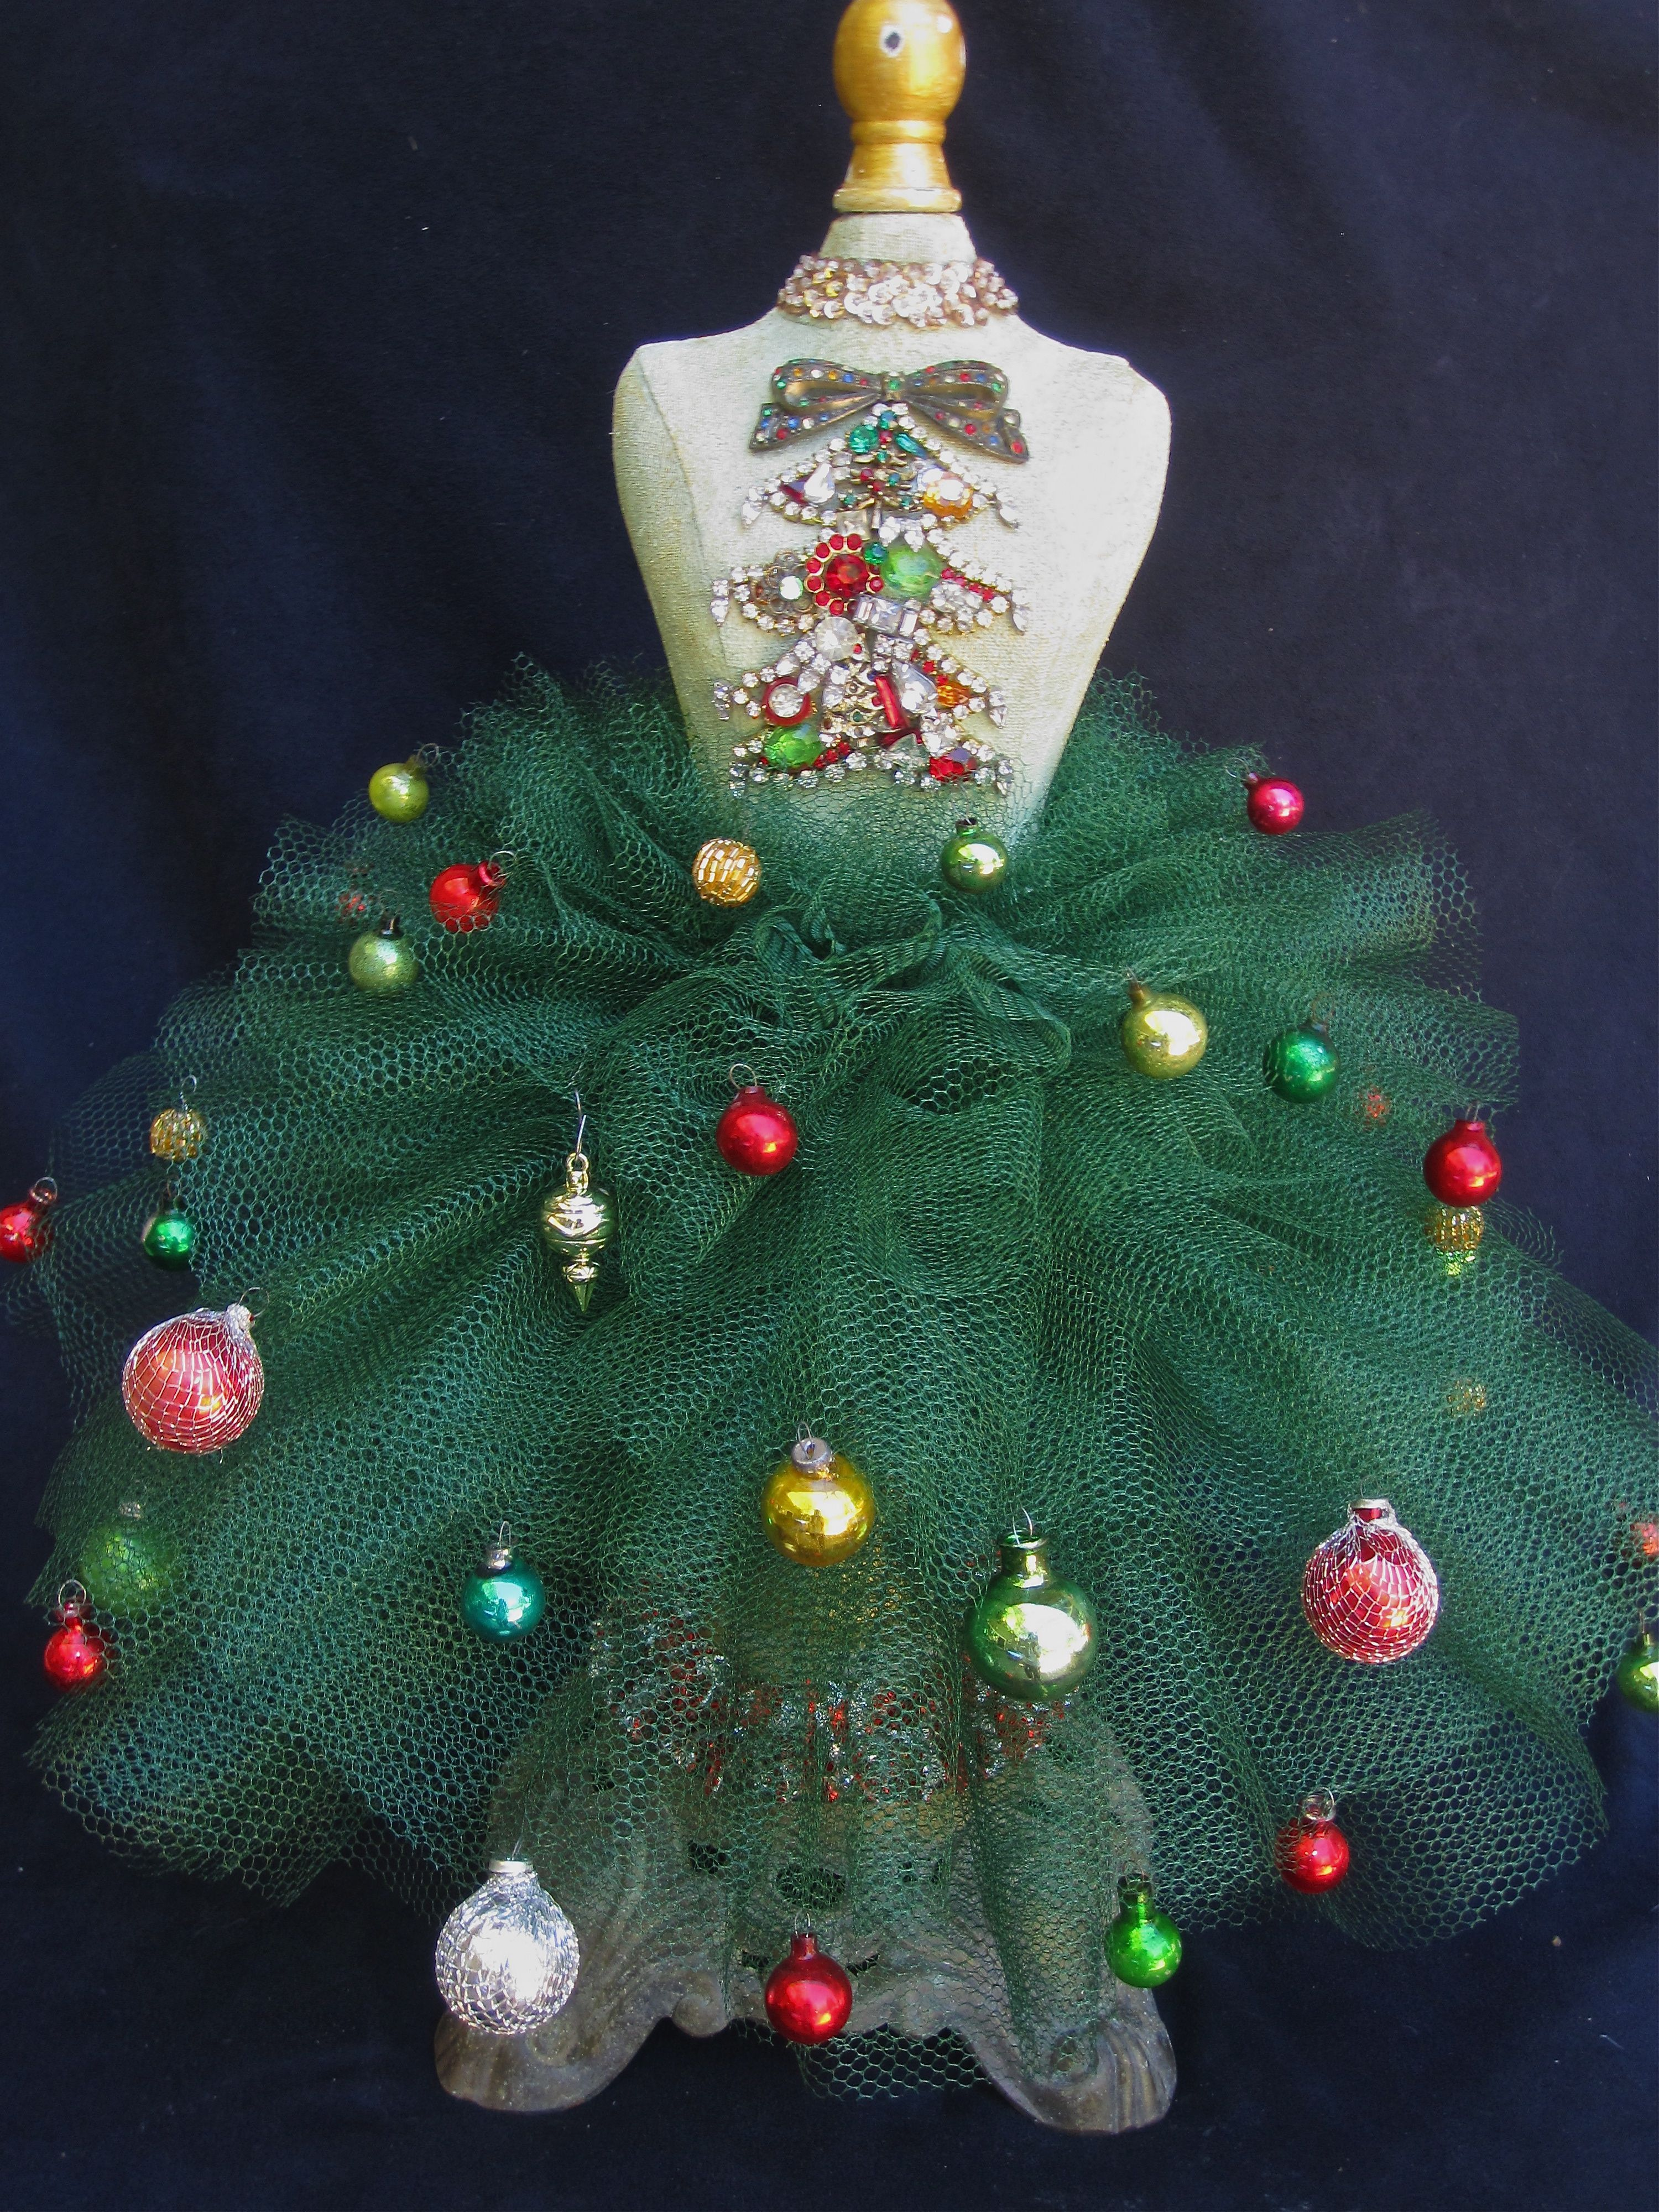 Designer meet whos printing wearable fashion, Christmas classy tree images